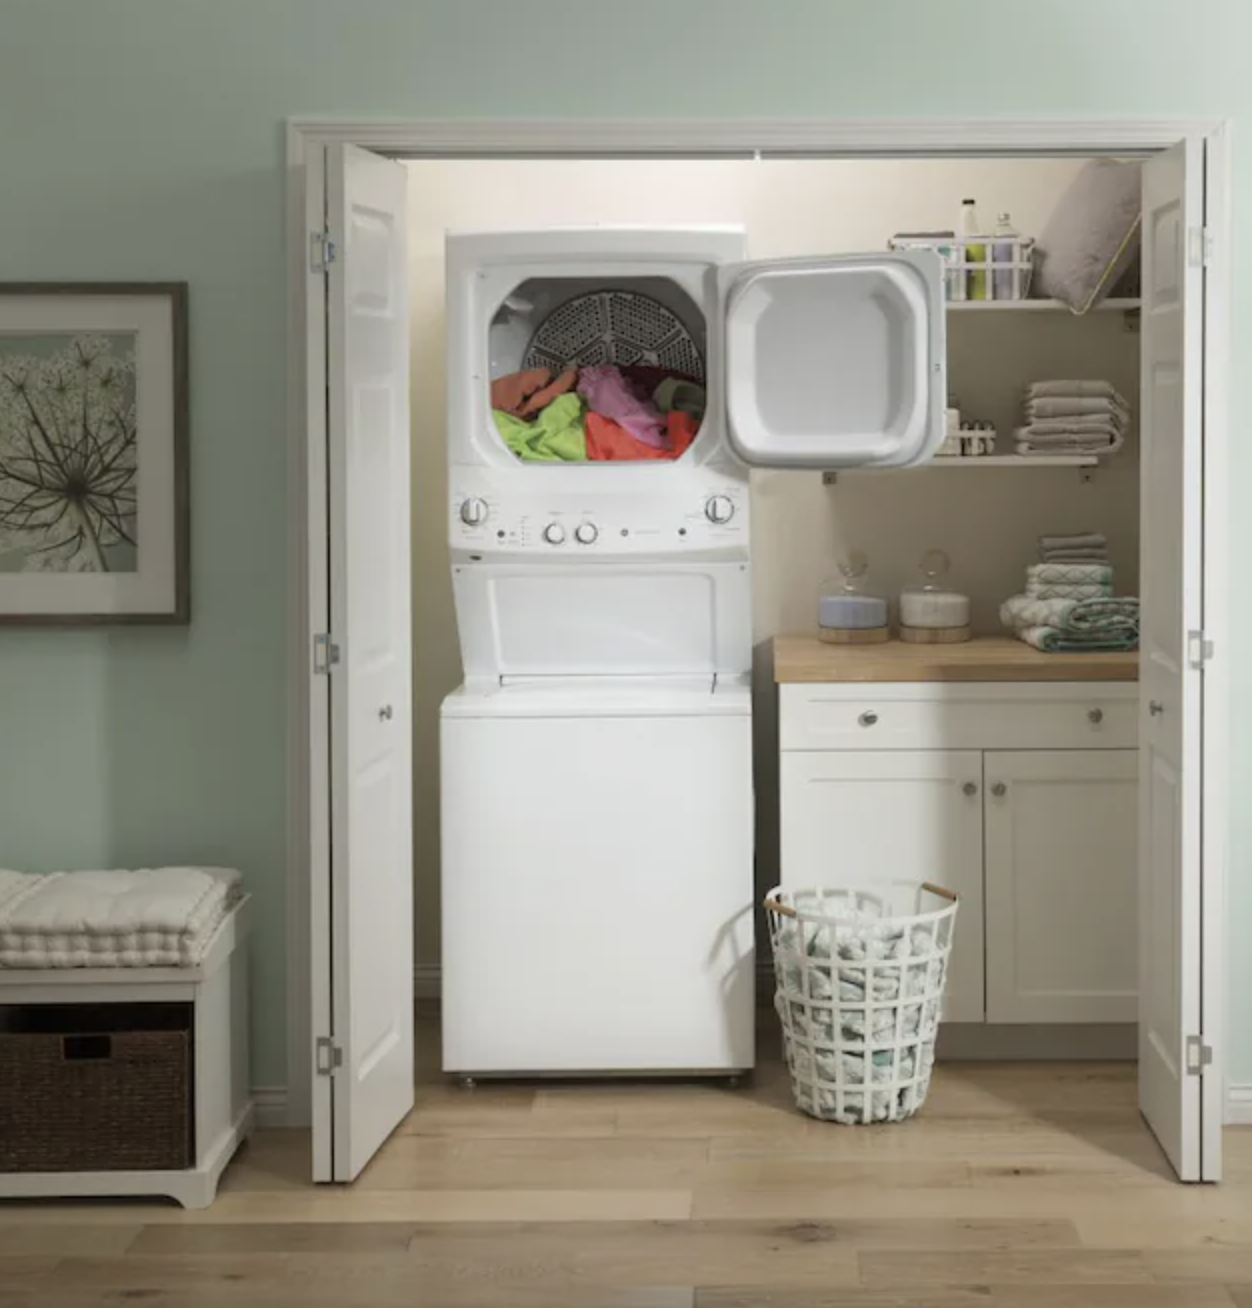 Stacked washer and dryer unit placed in laundry closet